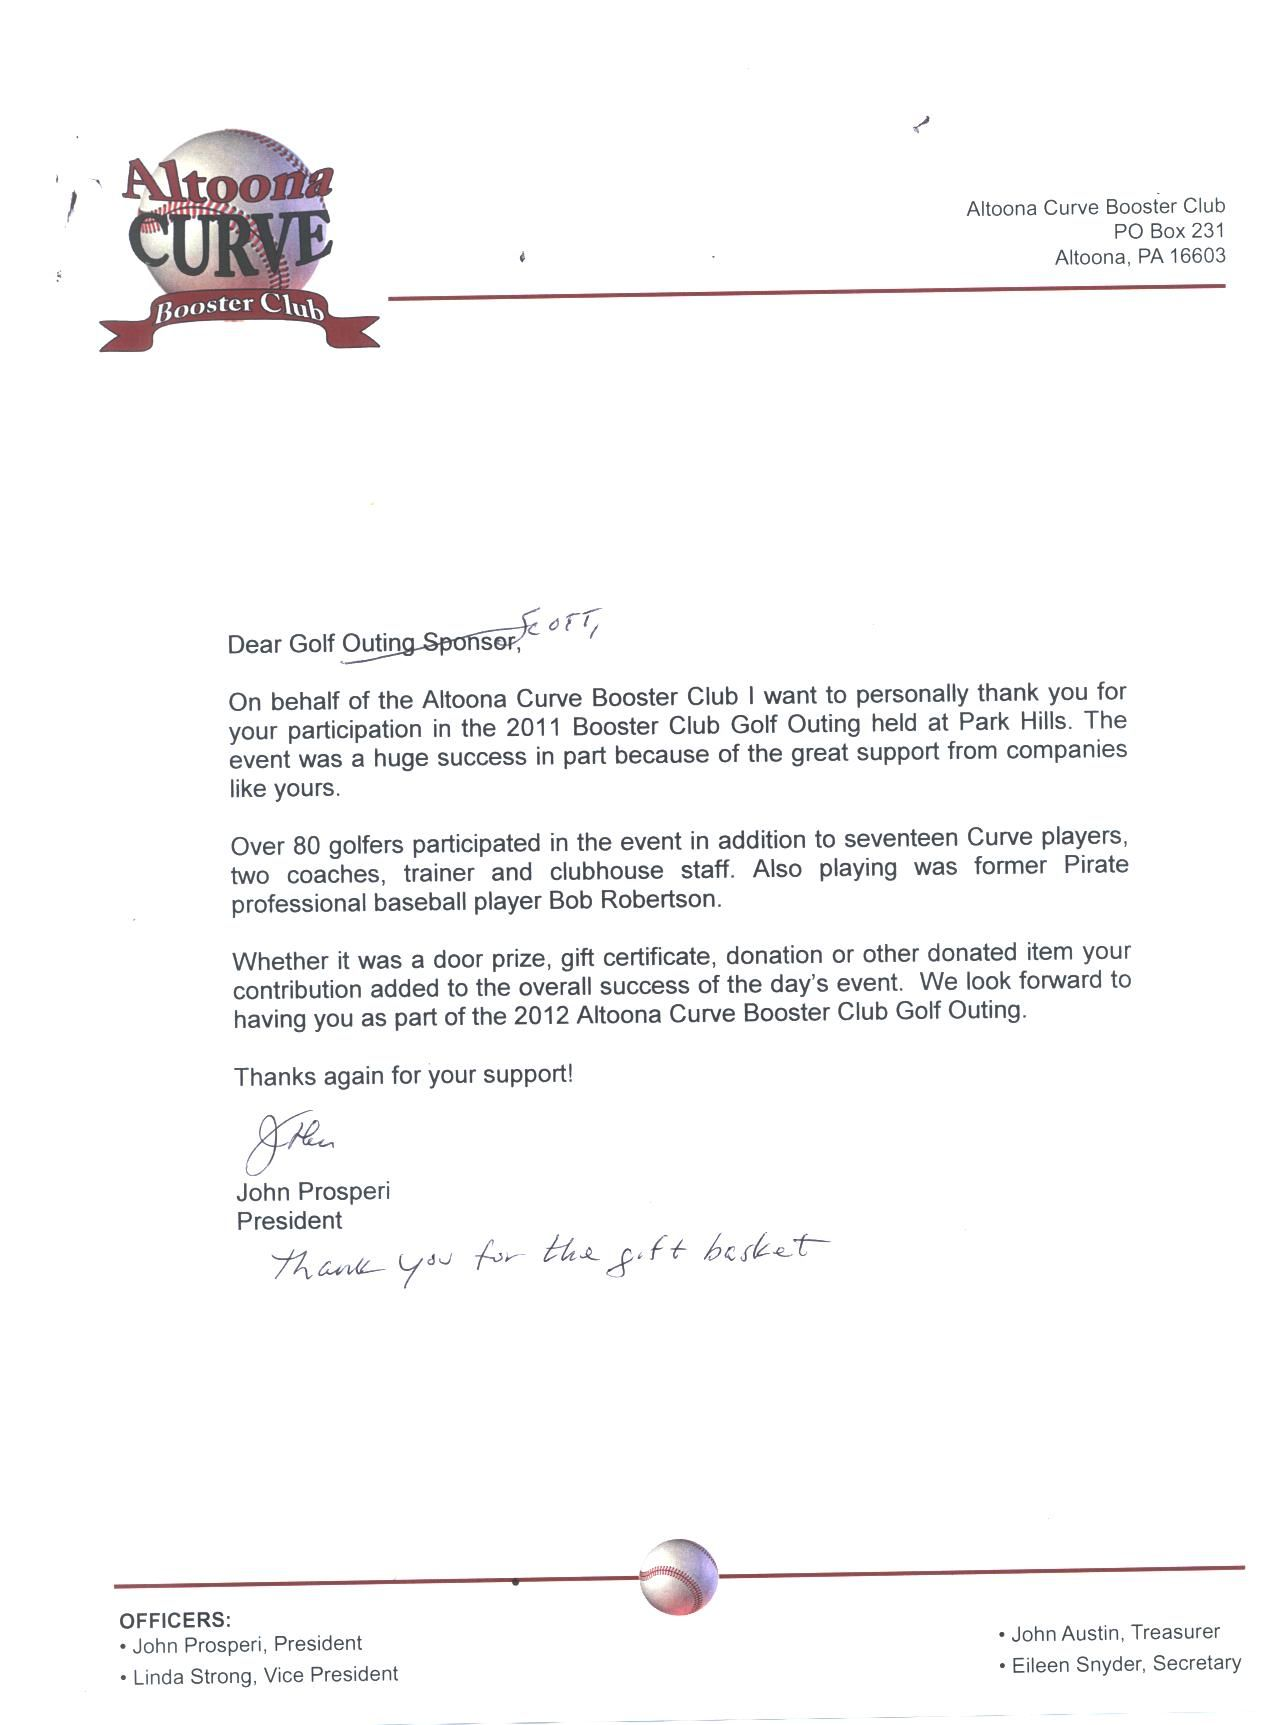 Thank You Letter For Our Participation The Altoona Curve Charity